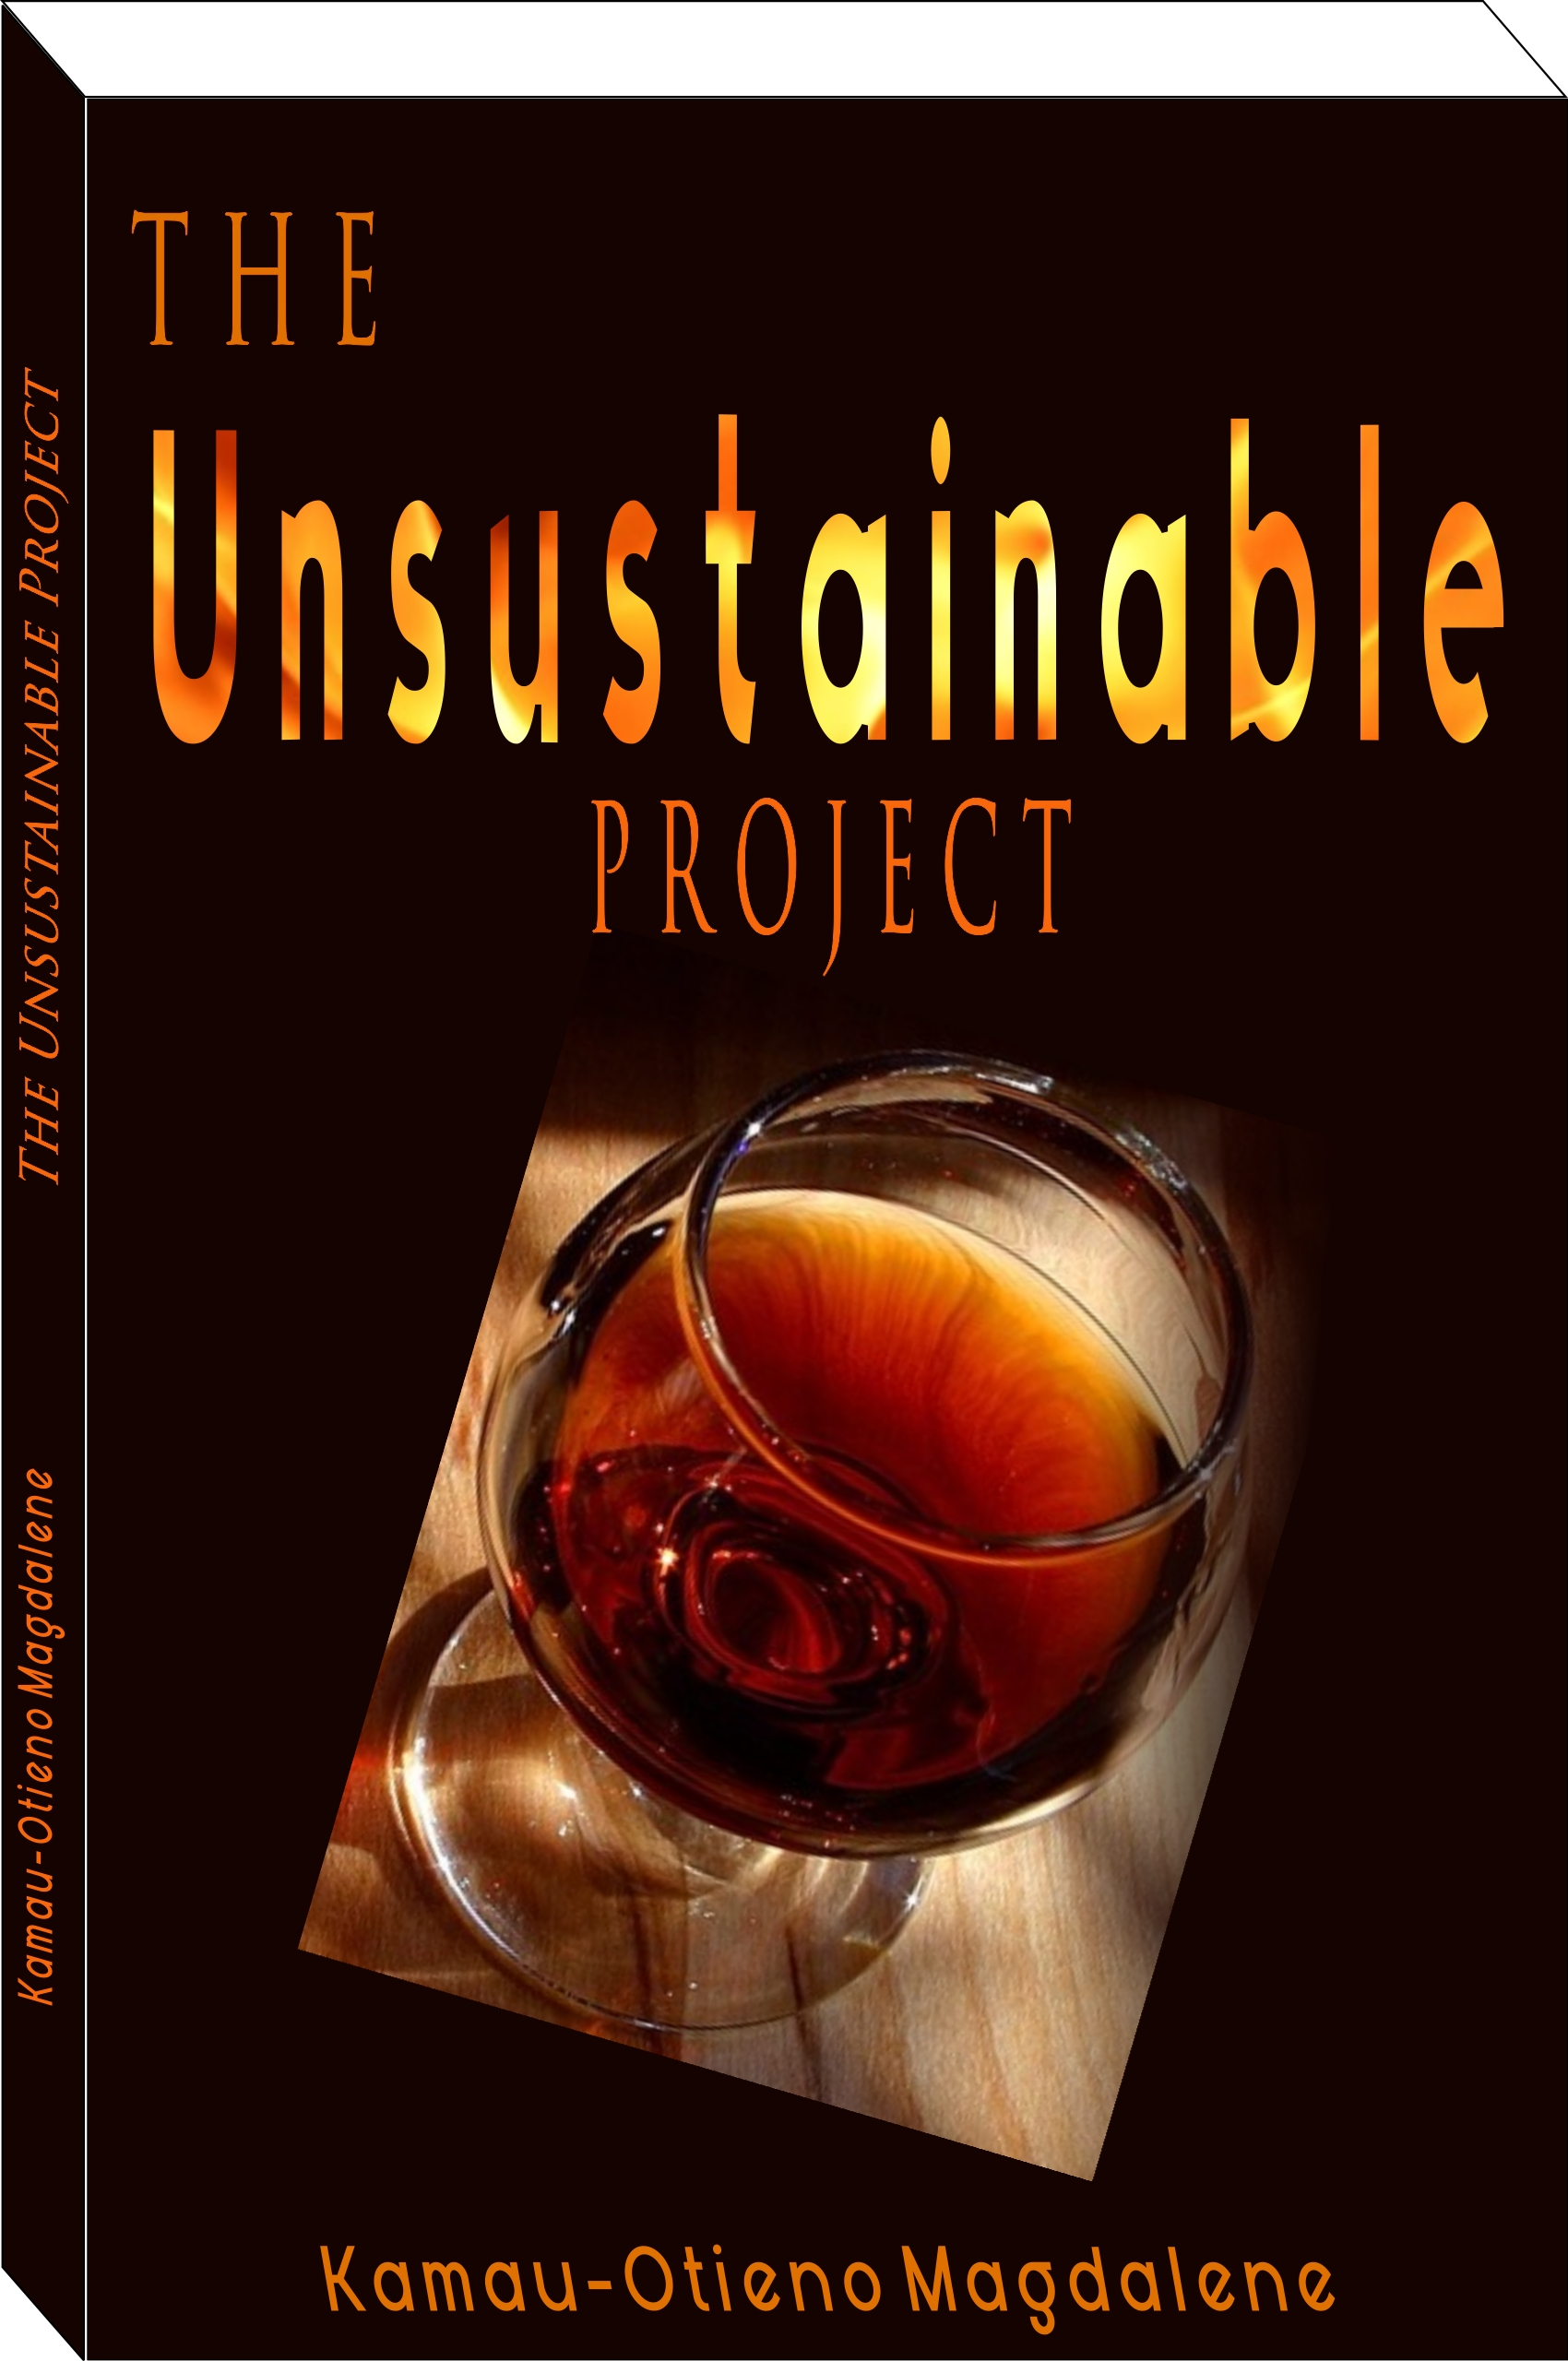 The Unsustainable Project